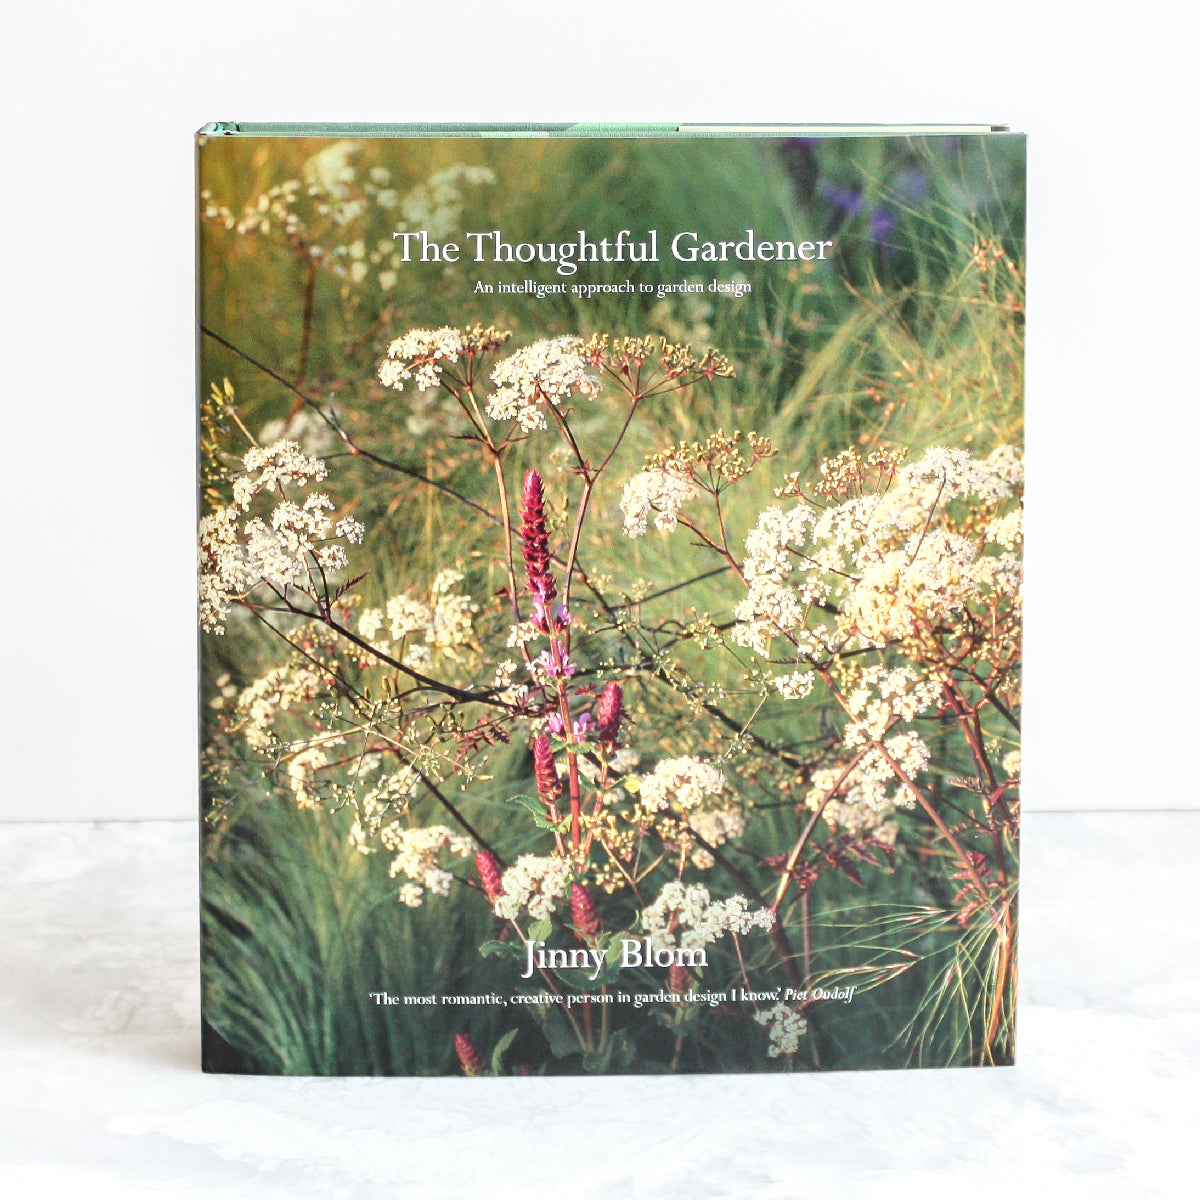 The Thoughtful Gardener by Jinny Blom published by Hachette Book Group